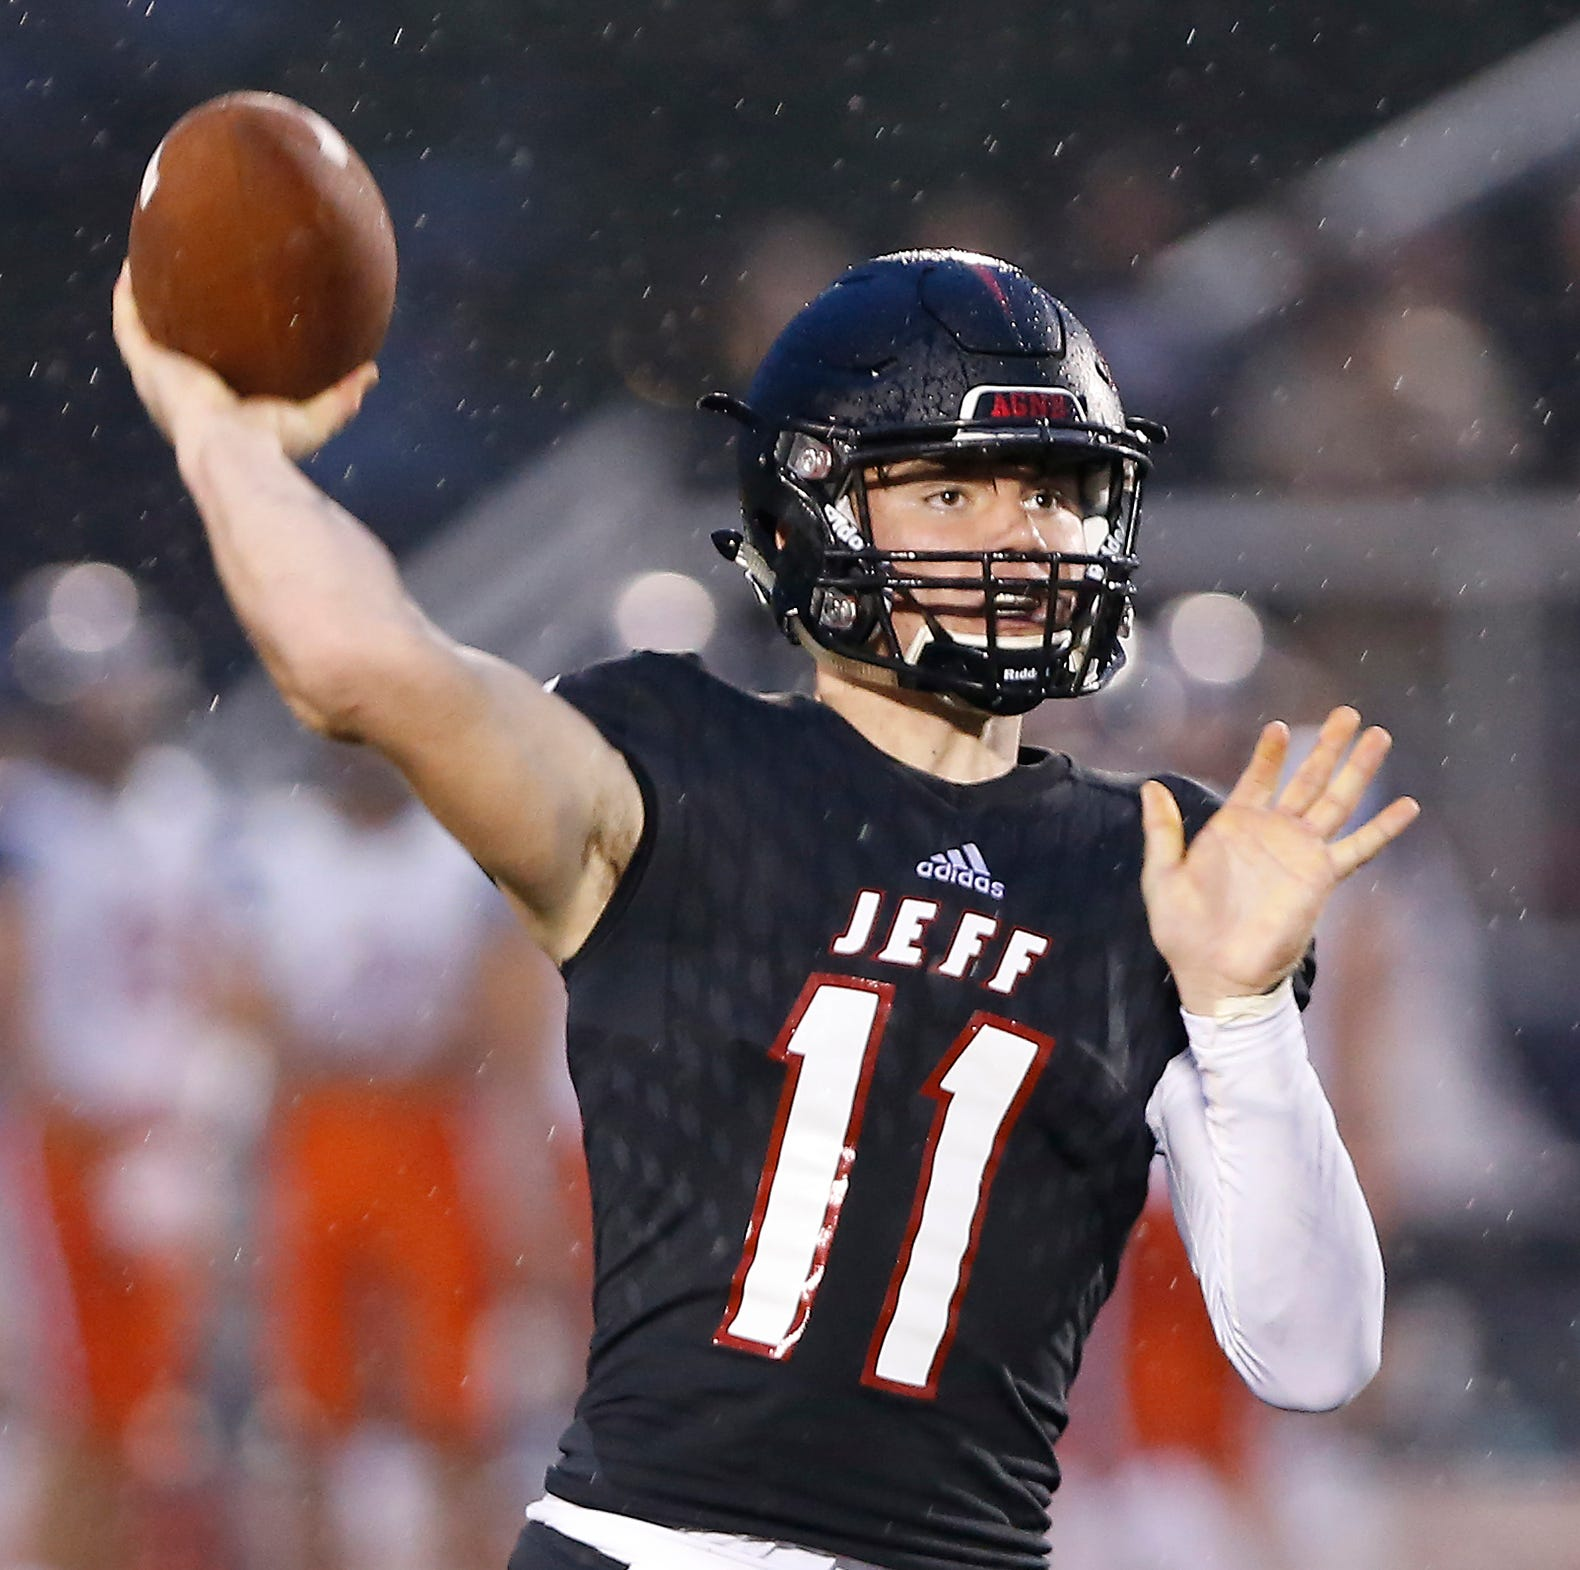 Lafayette Jeff routs Anderson on record-breaking night